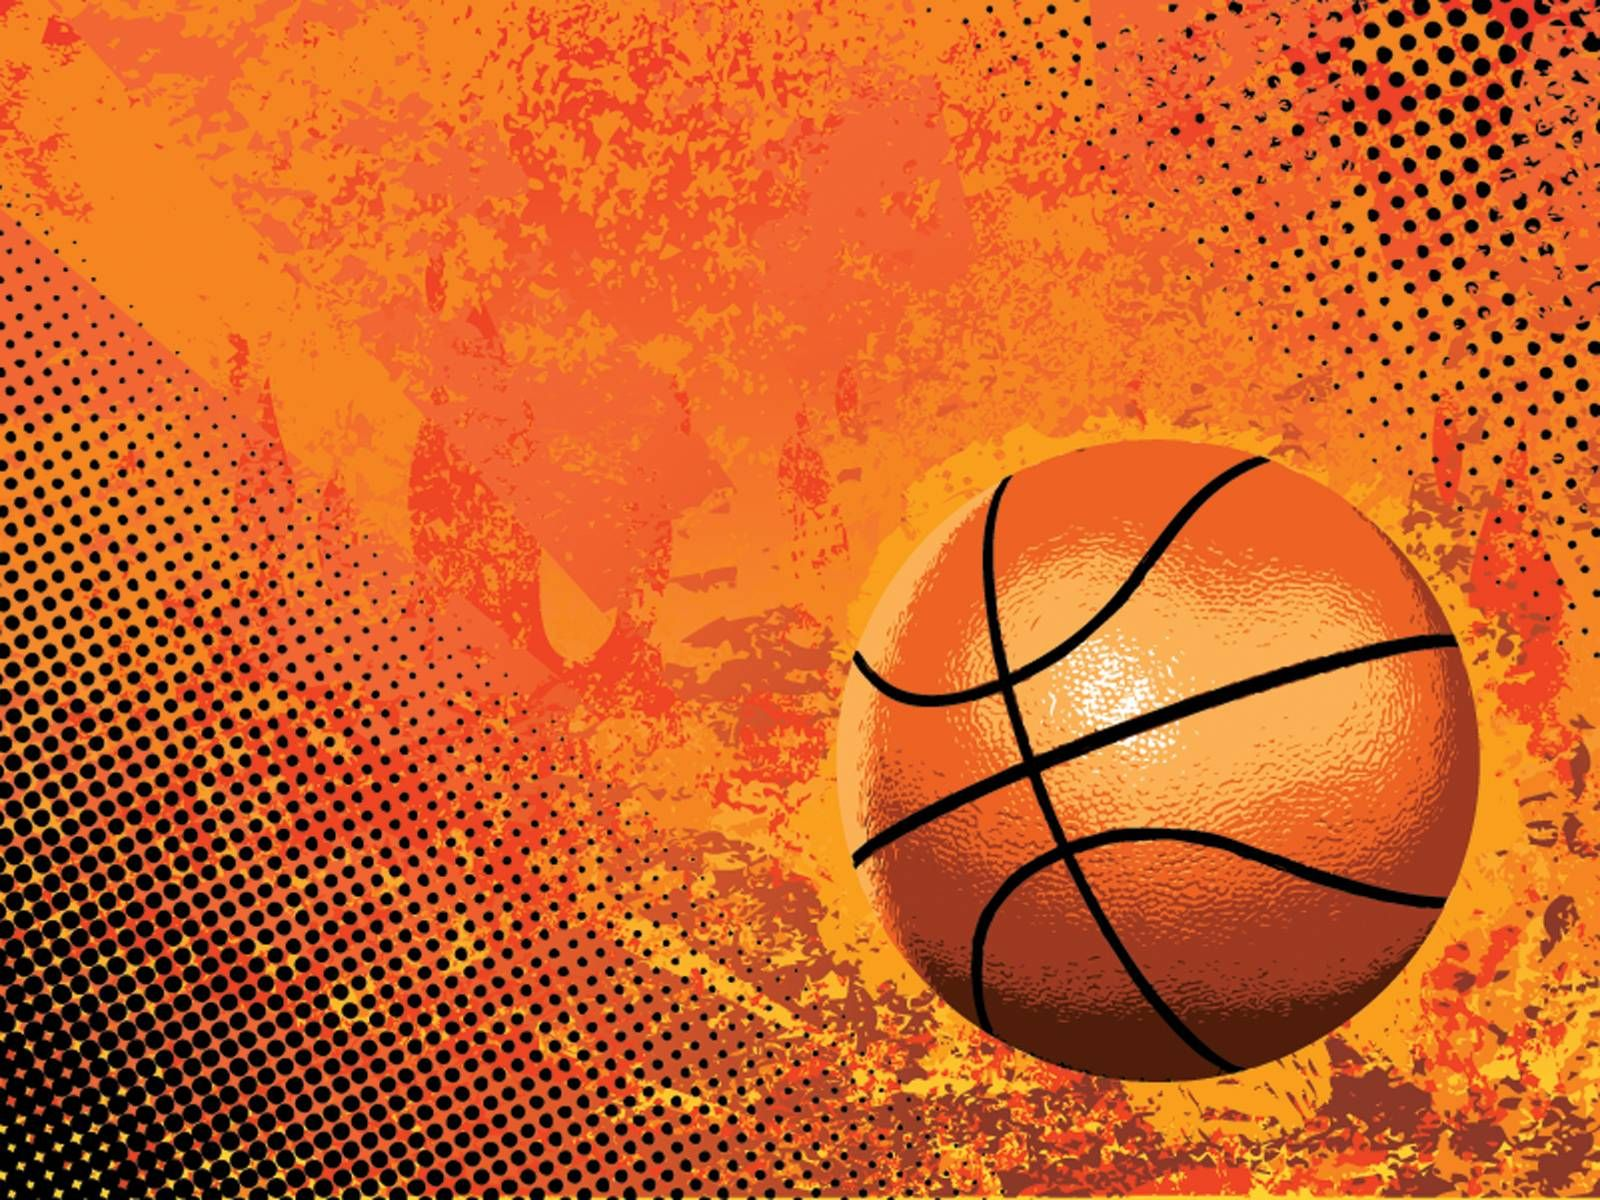 Sports S Wallpapers Images Jllsly Basketball Background Basketball Wallpaper Basketball Wallpapers Hd